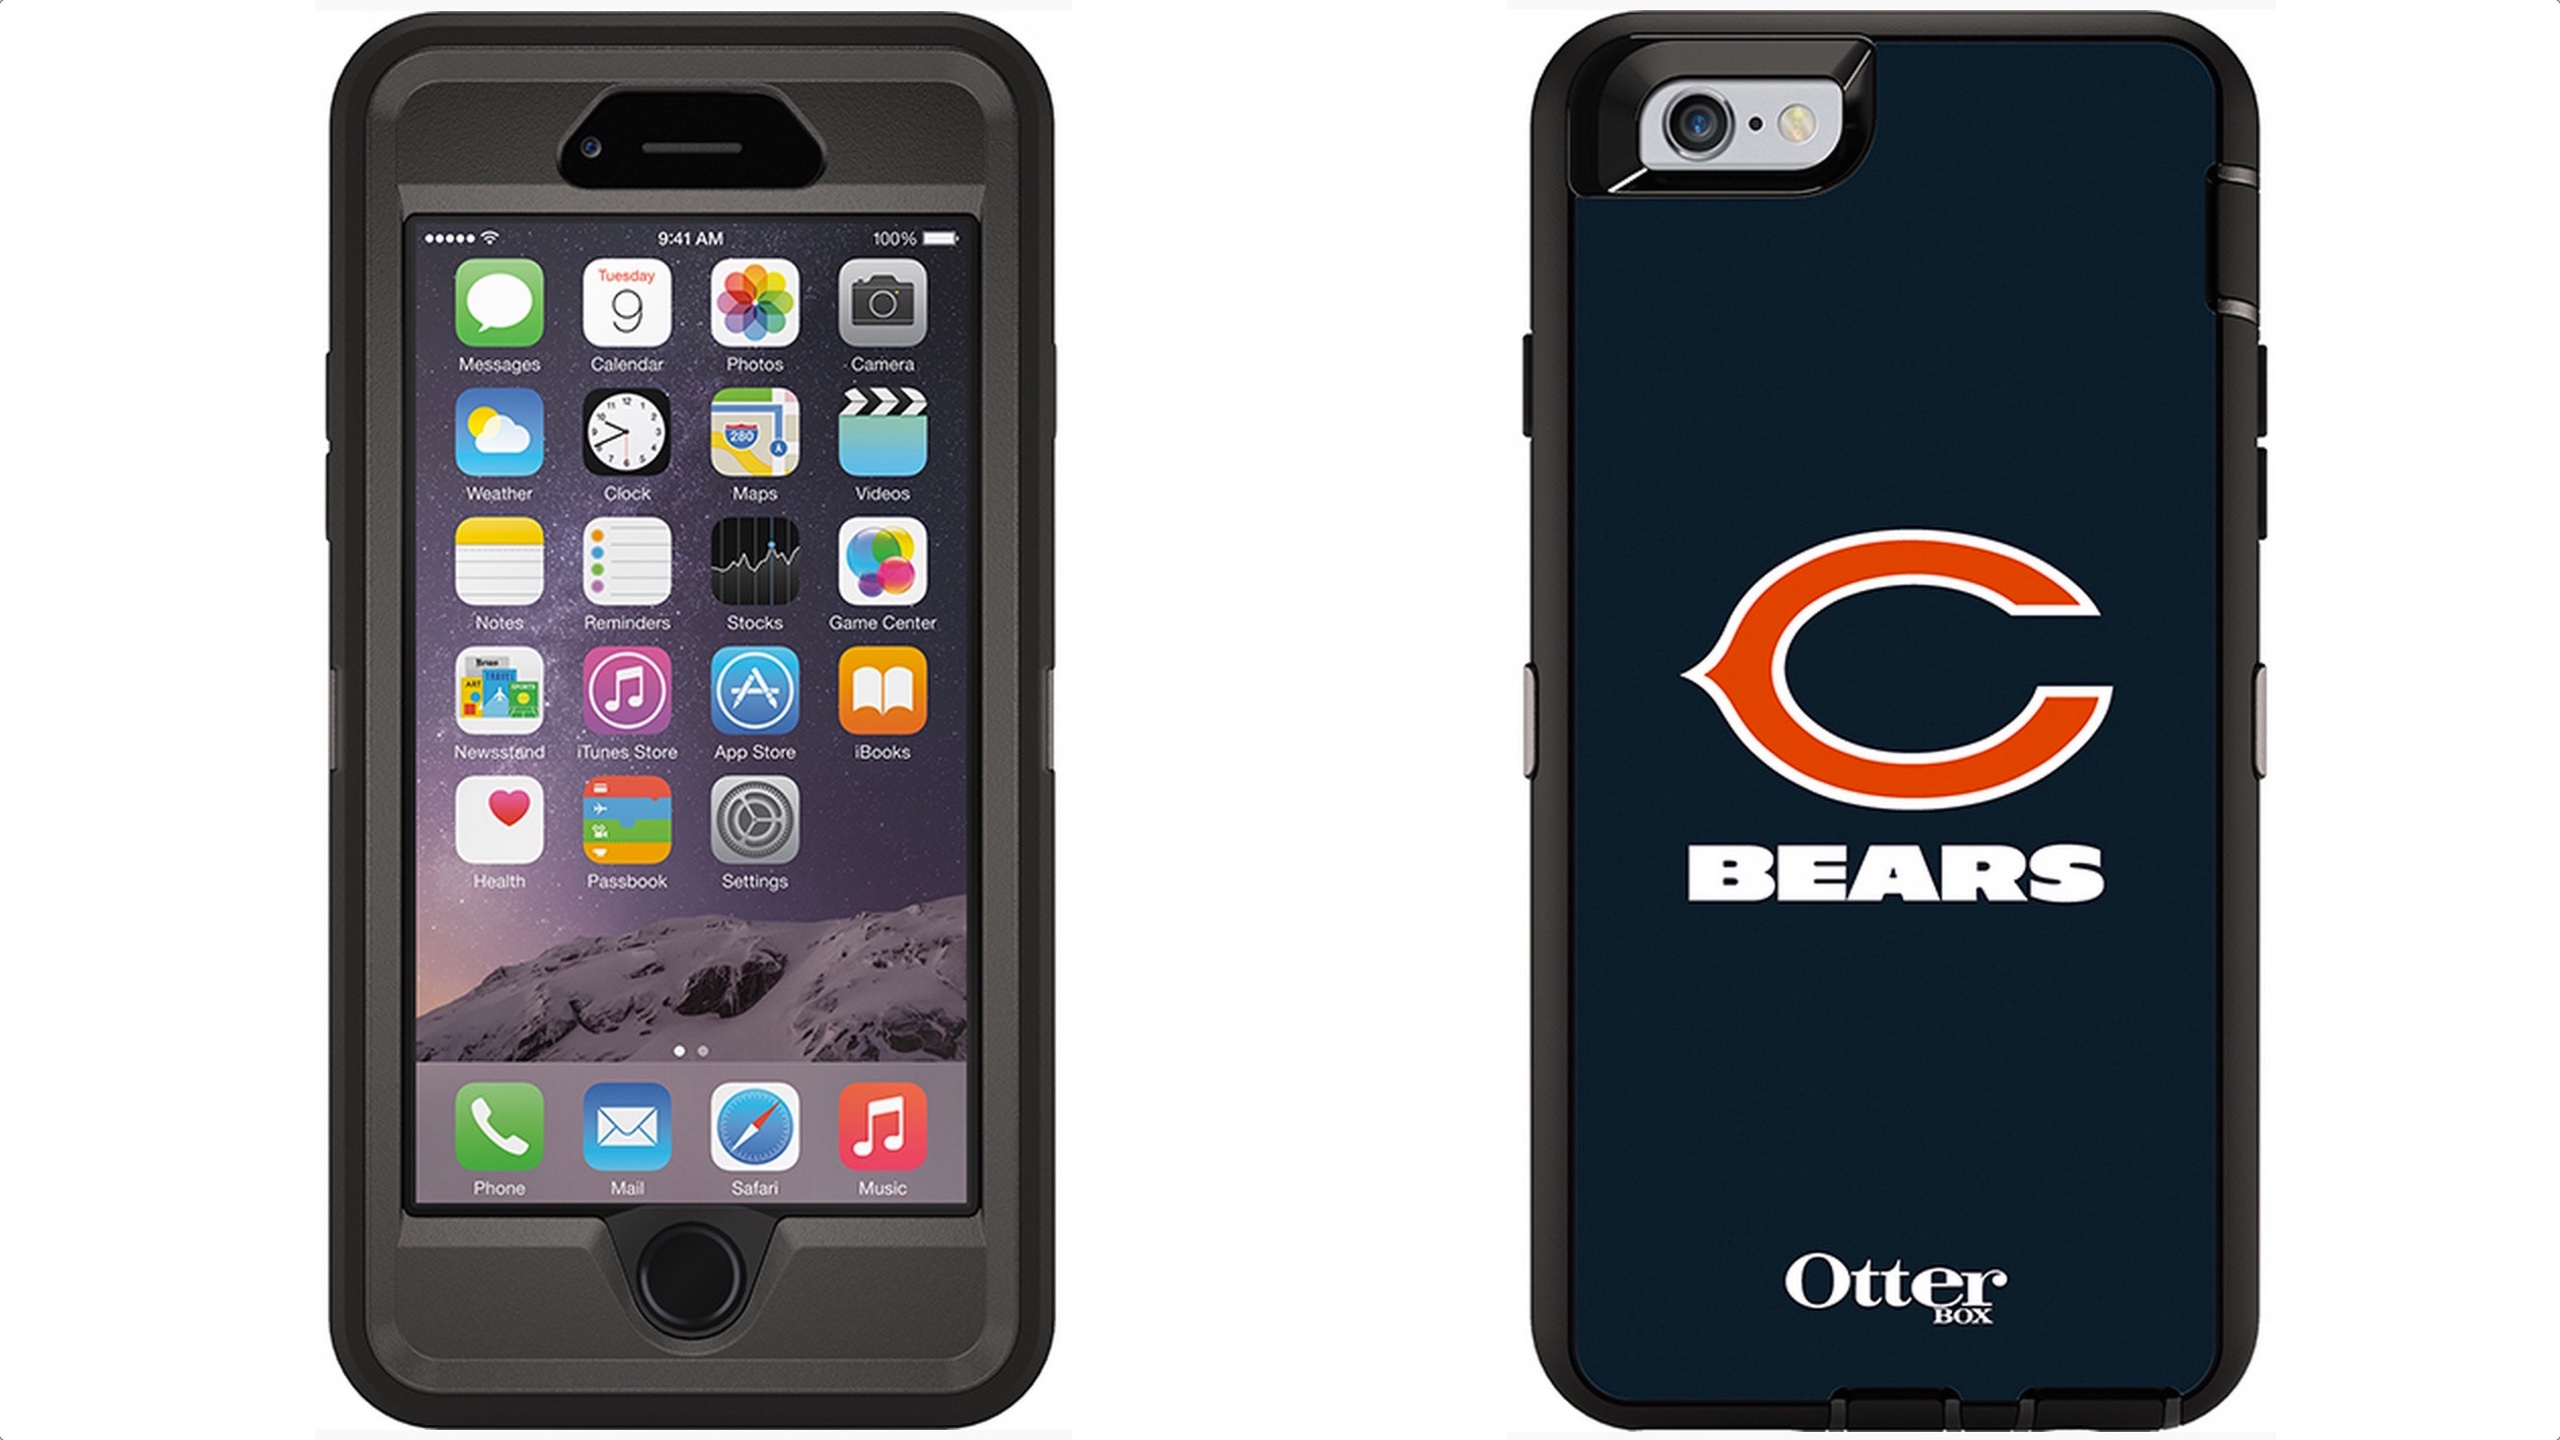 otterbox-iphone6-nfl-case